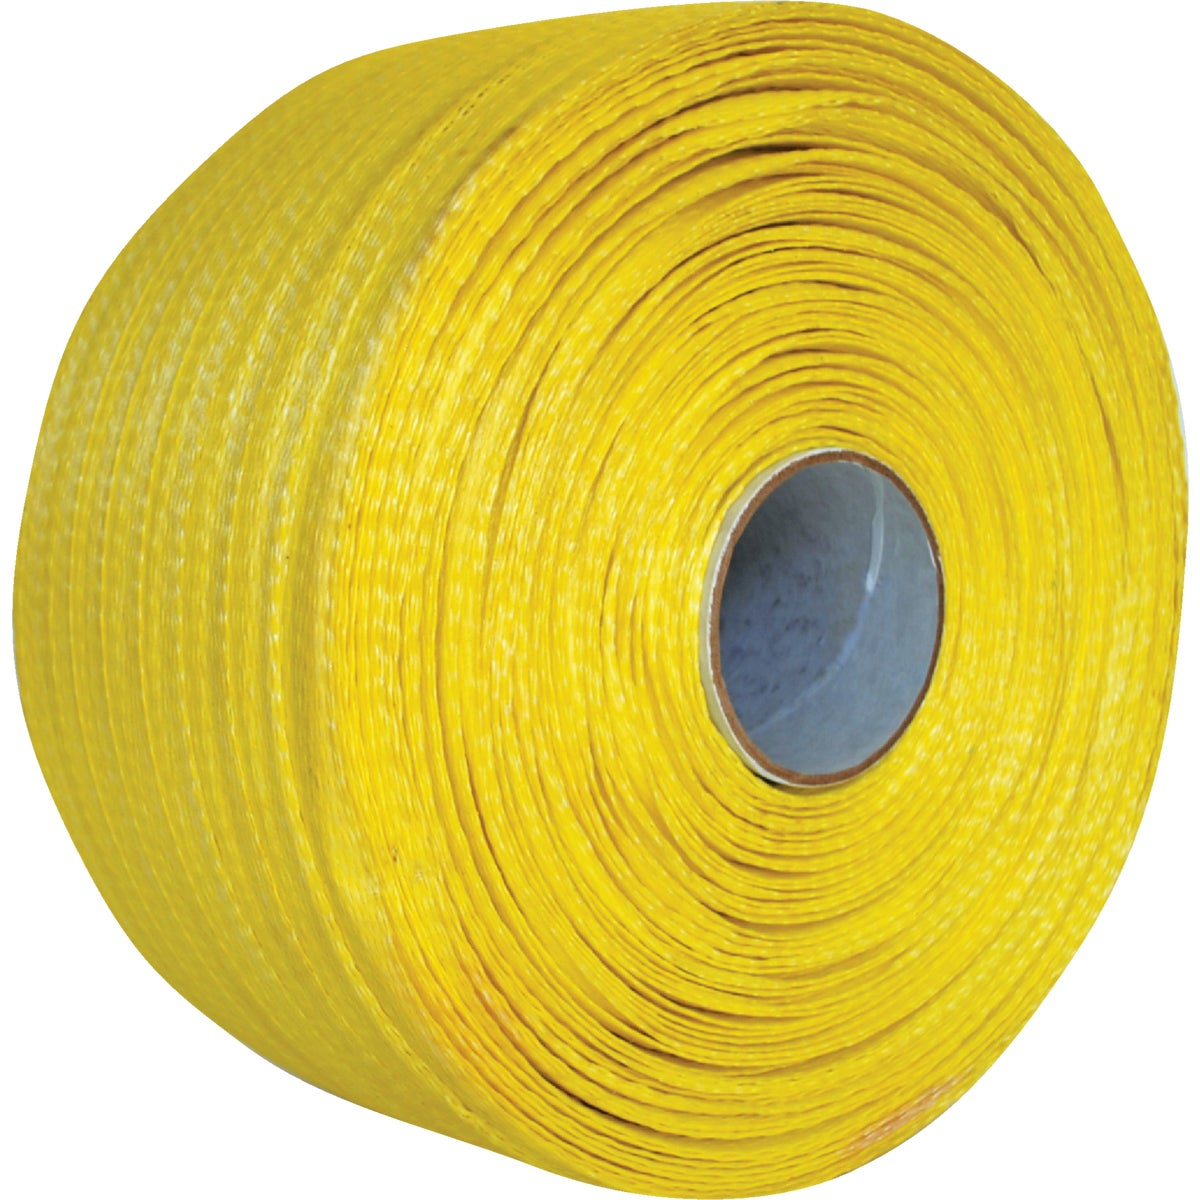 "3/4"" MD POLY STRAPPING - 66WXL by Strap & Wrap"